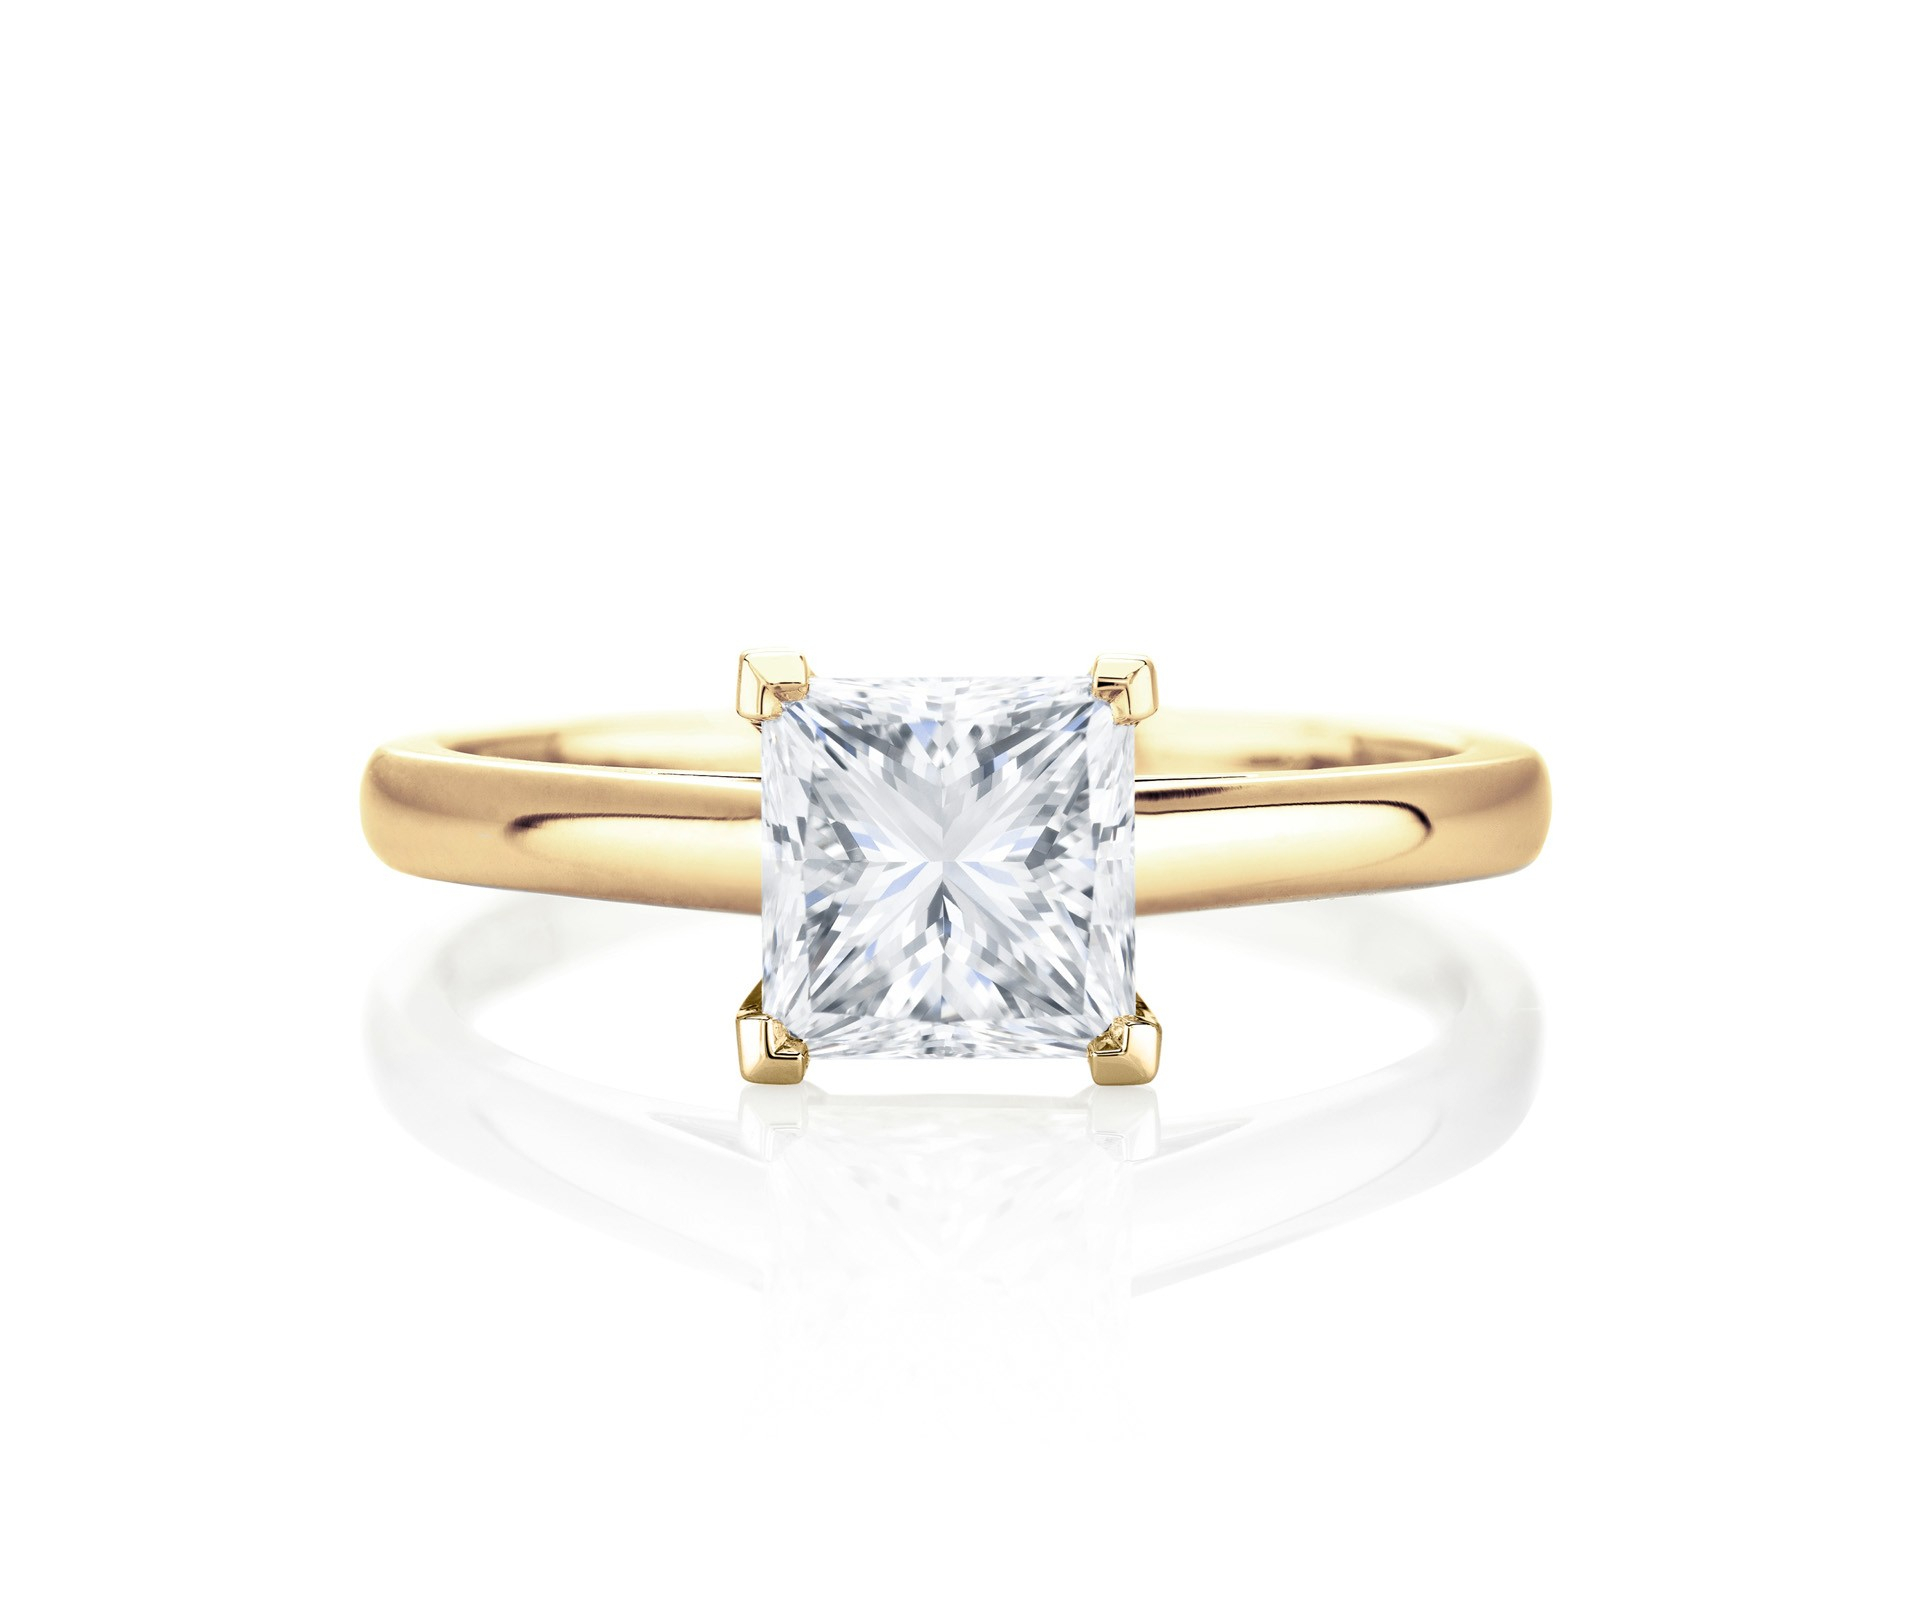 Princess Cut Diamond Engagement Rings | De Beers Within Most Up To Date Square Sparkle Halo Rings (View 15 of 25)